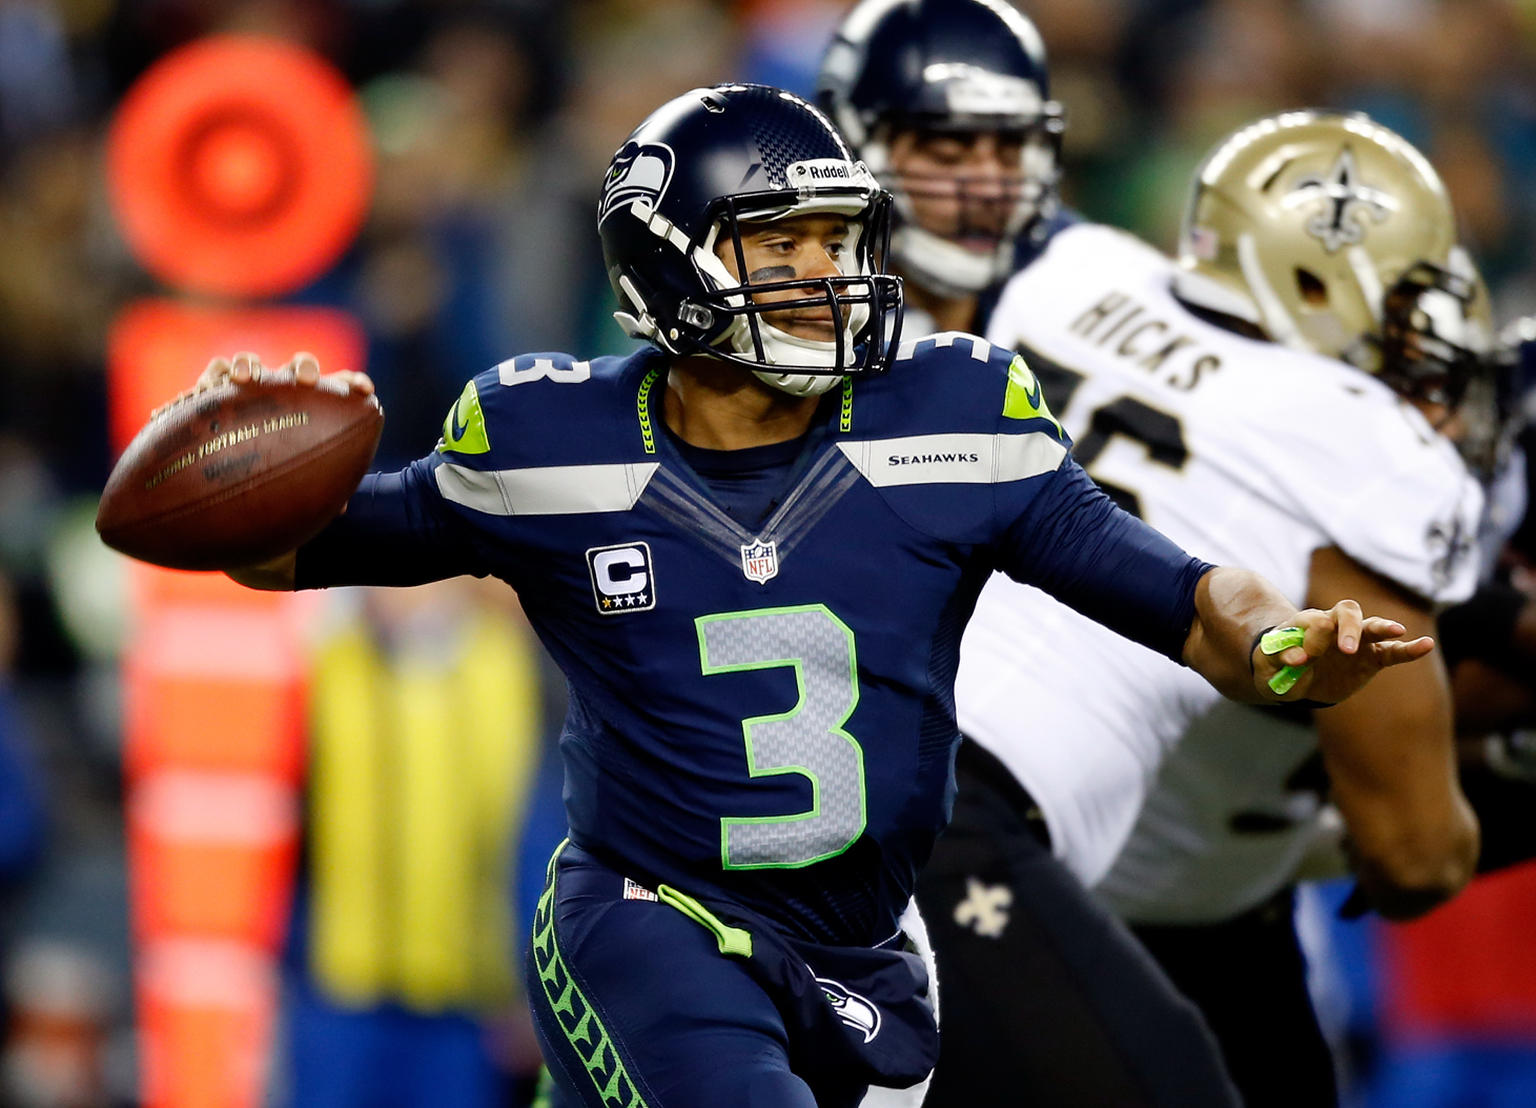 Seattle's rout likely locks up top seed in NFC playoffs